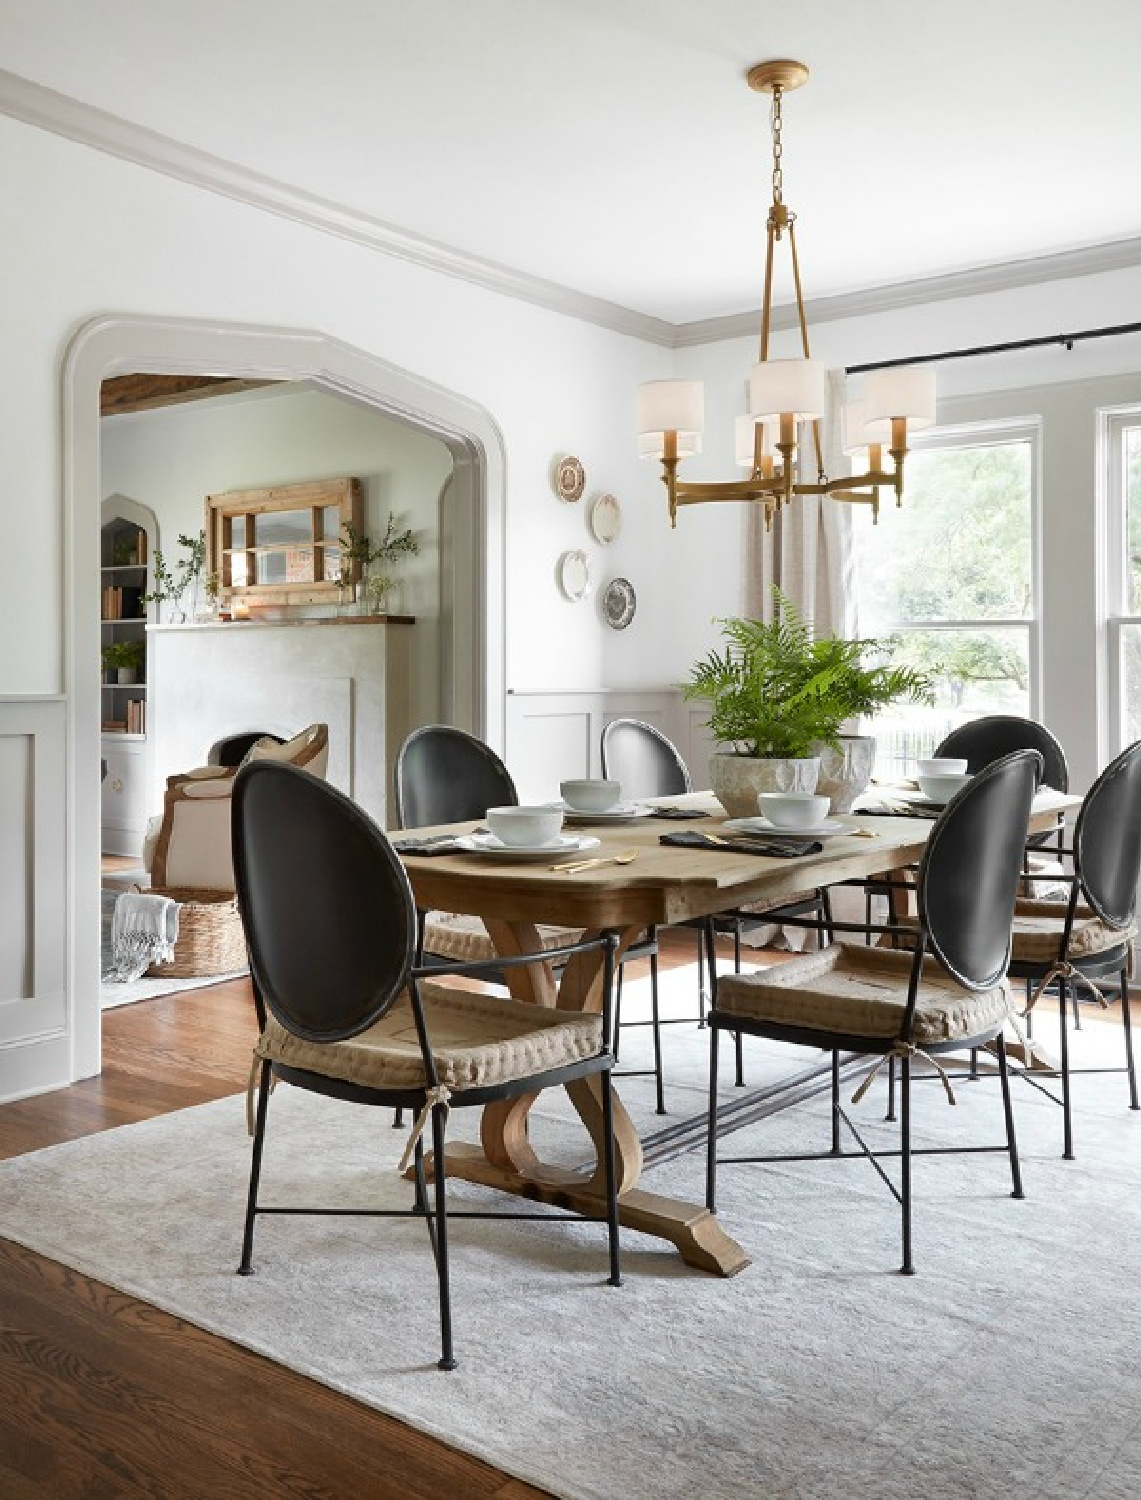 Scrivano dining room: modern Louis style black dining chairs,, grey trim, white walls, neutral classic style. Come get the Look of the Scrivano Tudor renovated by Joanna & Chip on HGTV's FIXER UPPER! #scrivano #fixerupper #diningroom